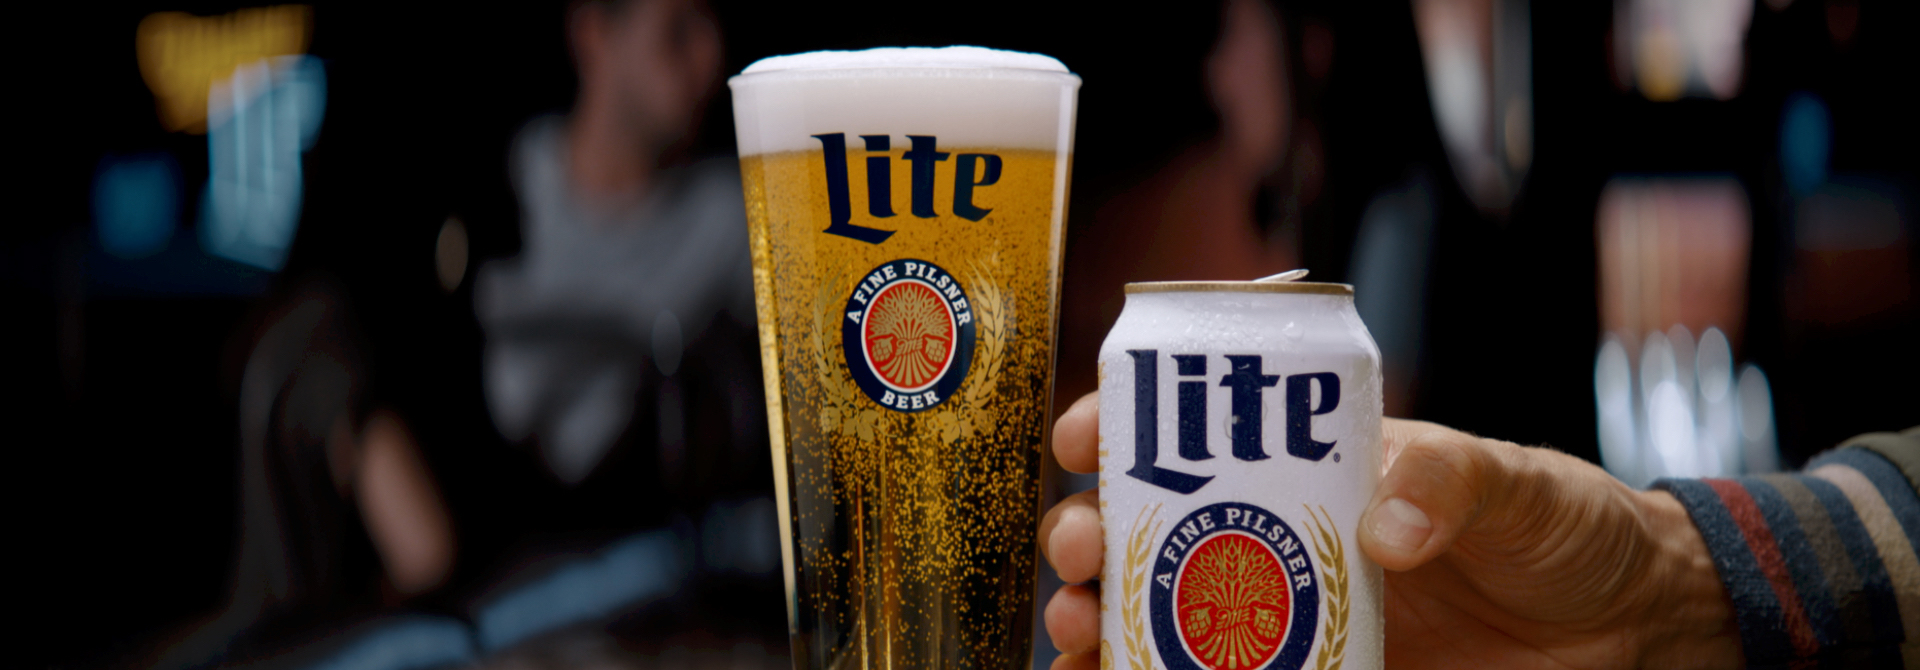 Miller Lite glass and can